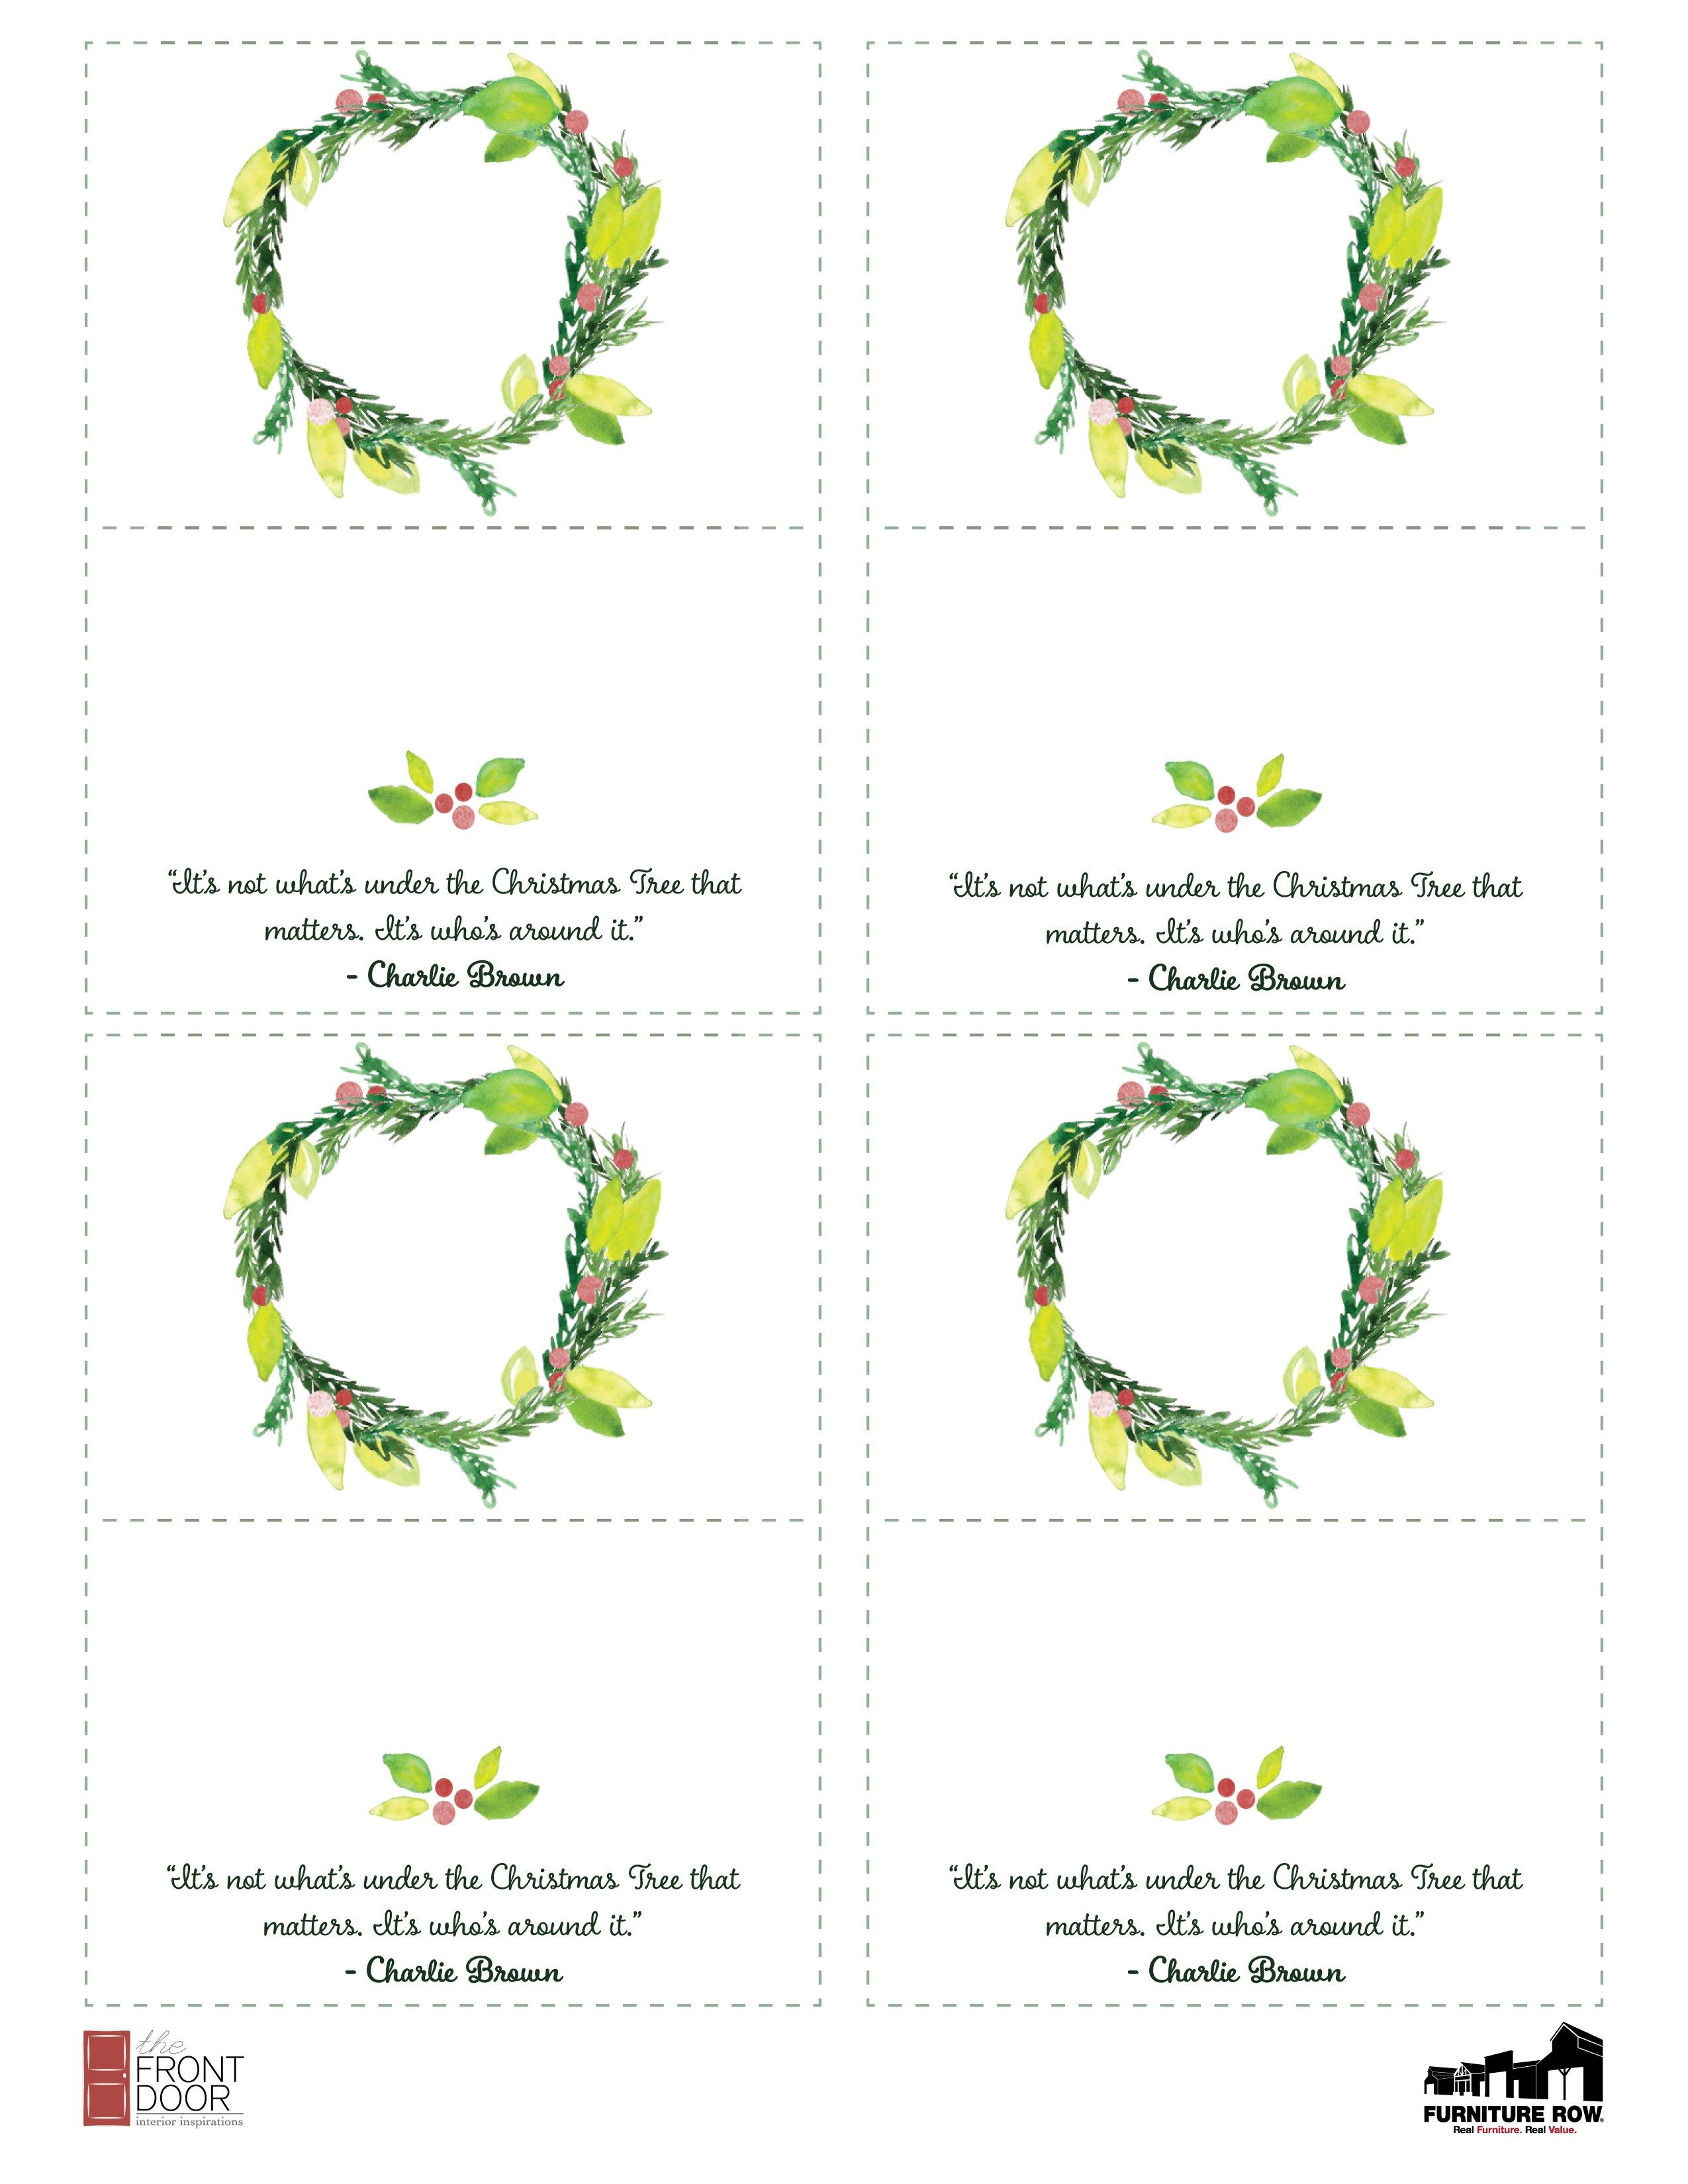 Printable Christmas Place Name Cards For The Table | Holiday - Free Printable Place Cards